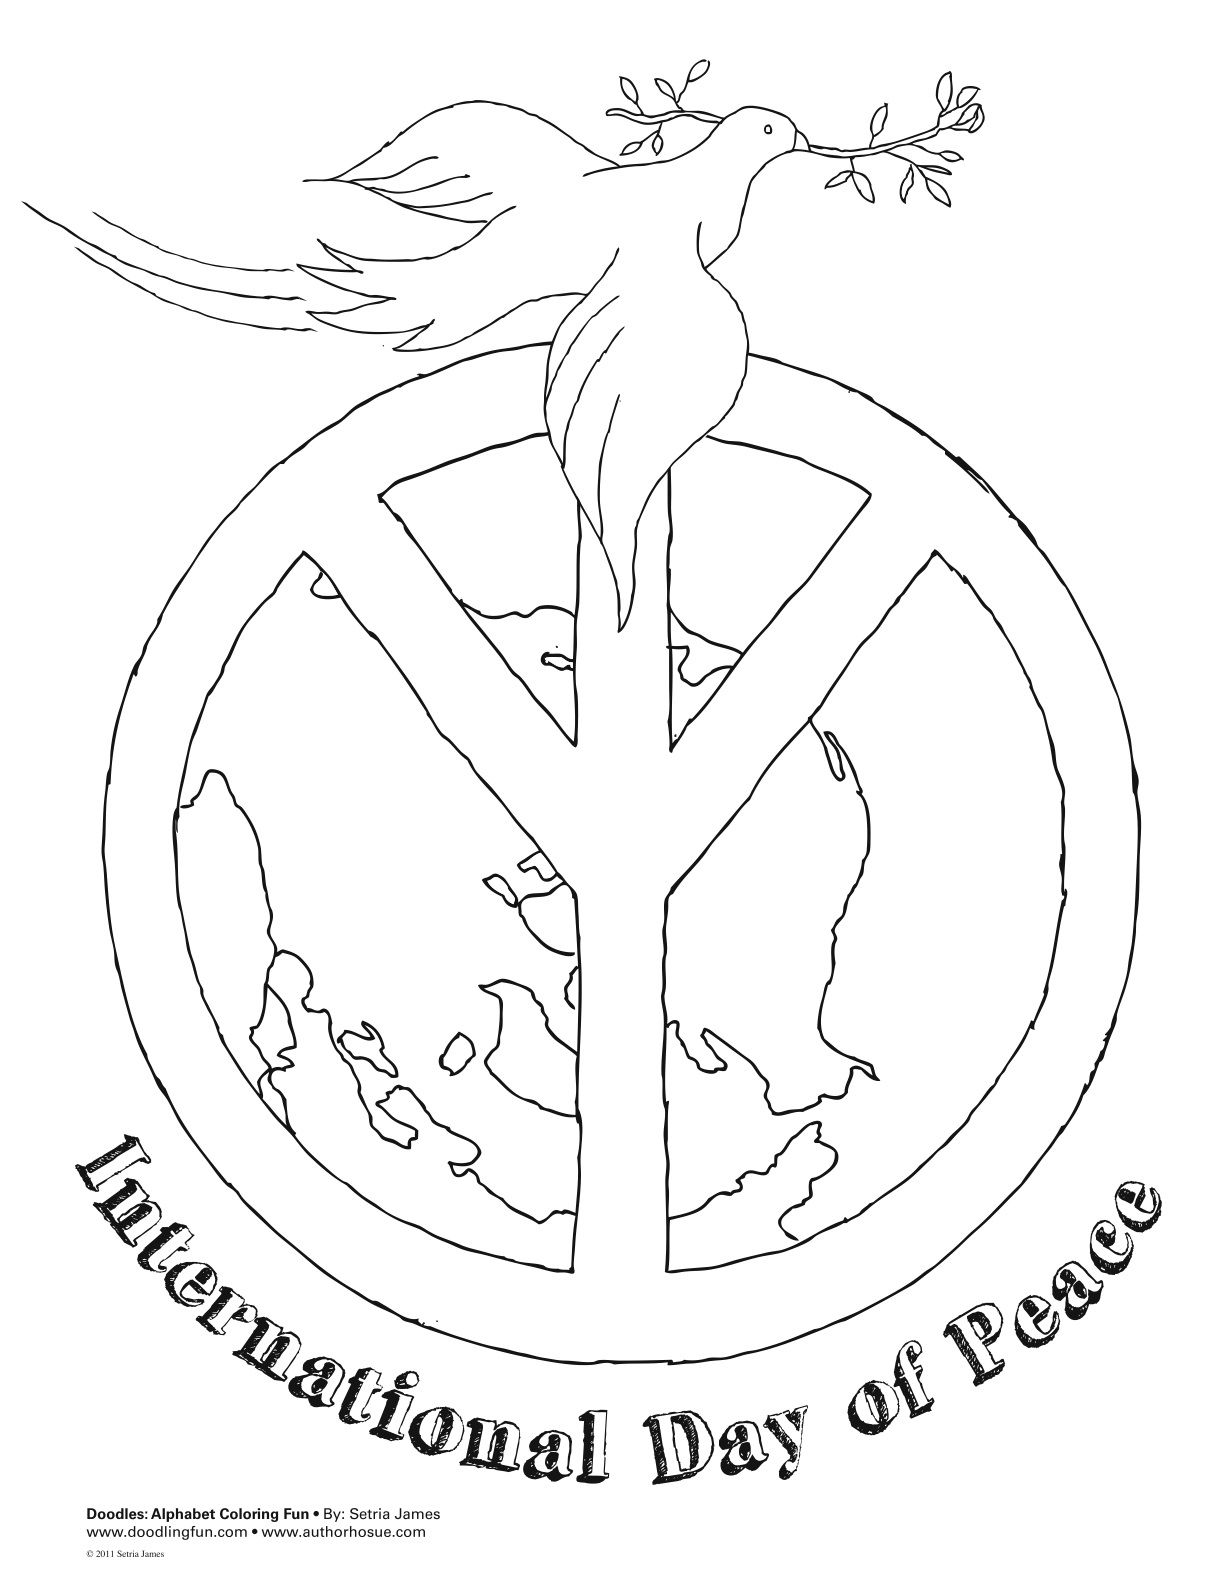 International peace day coloring page pinterest peace international peace day coloring page biocorpaavc Image collections